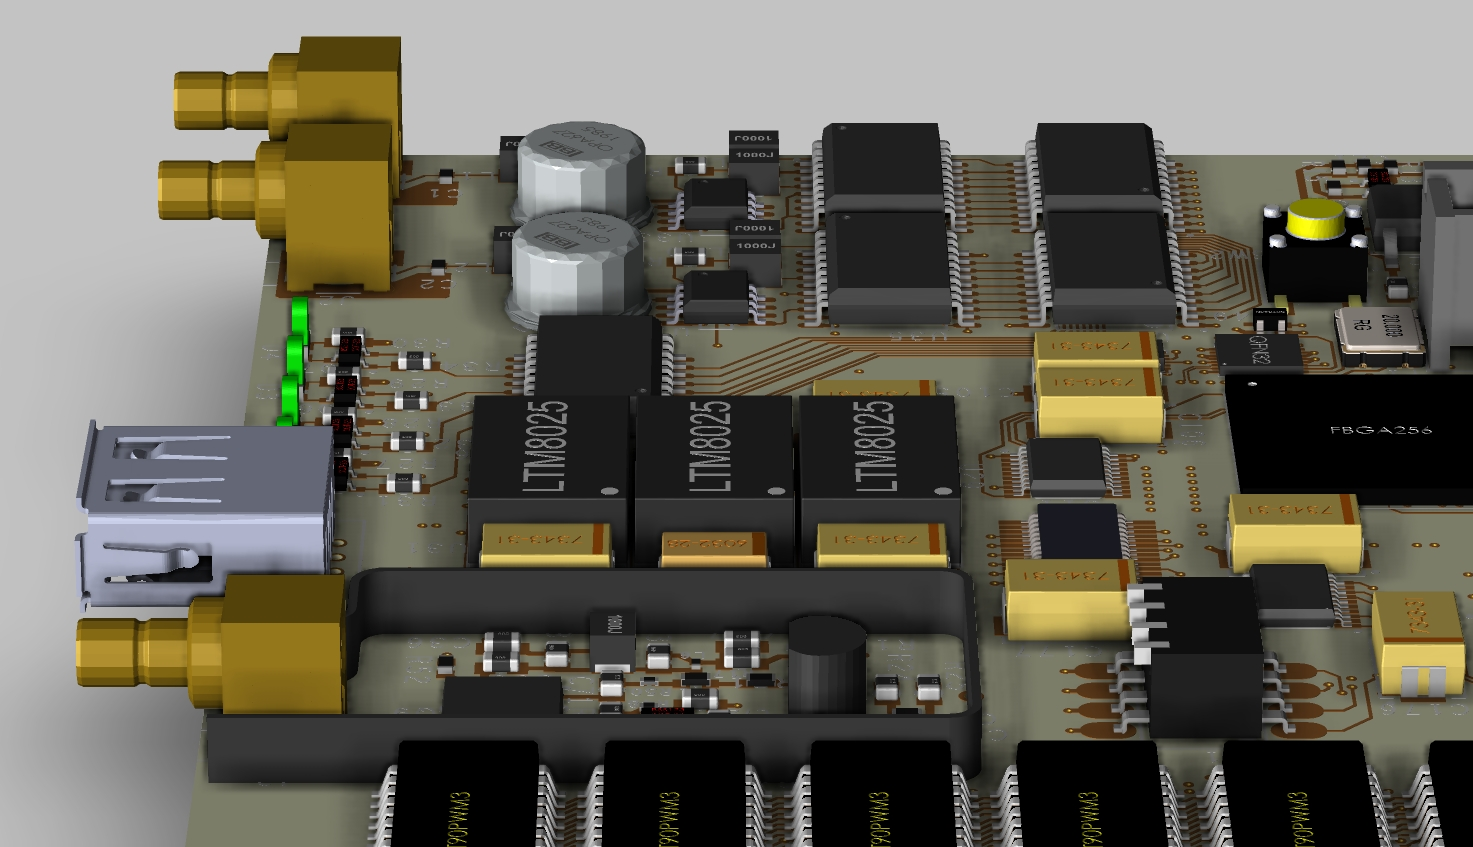 Printed circuit board with analog components ready for further design work